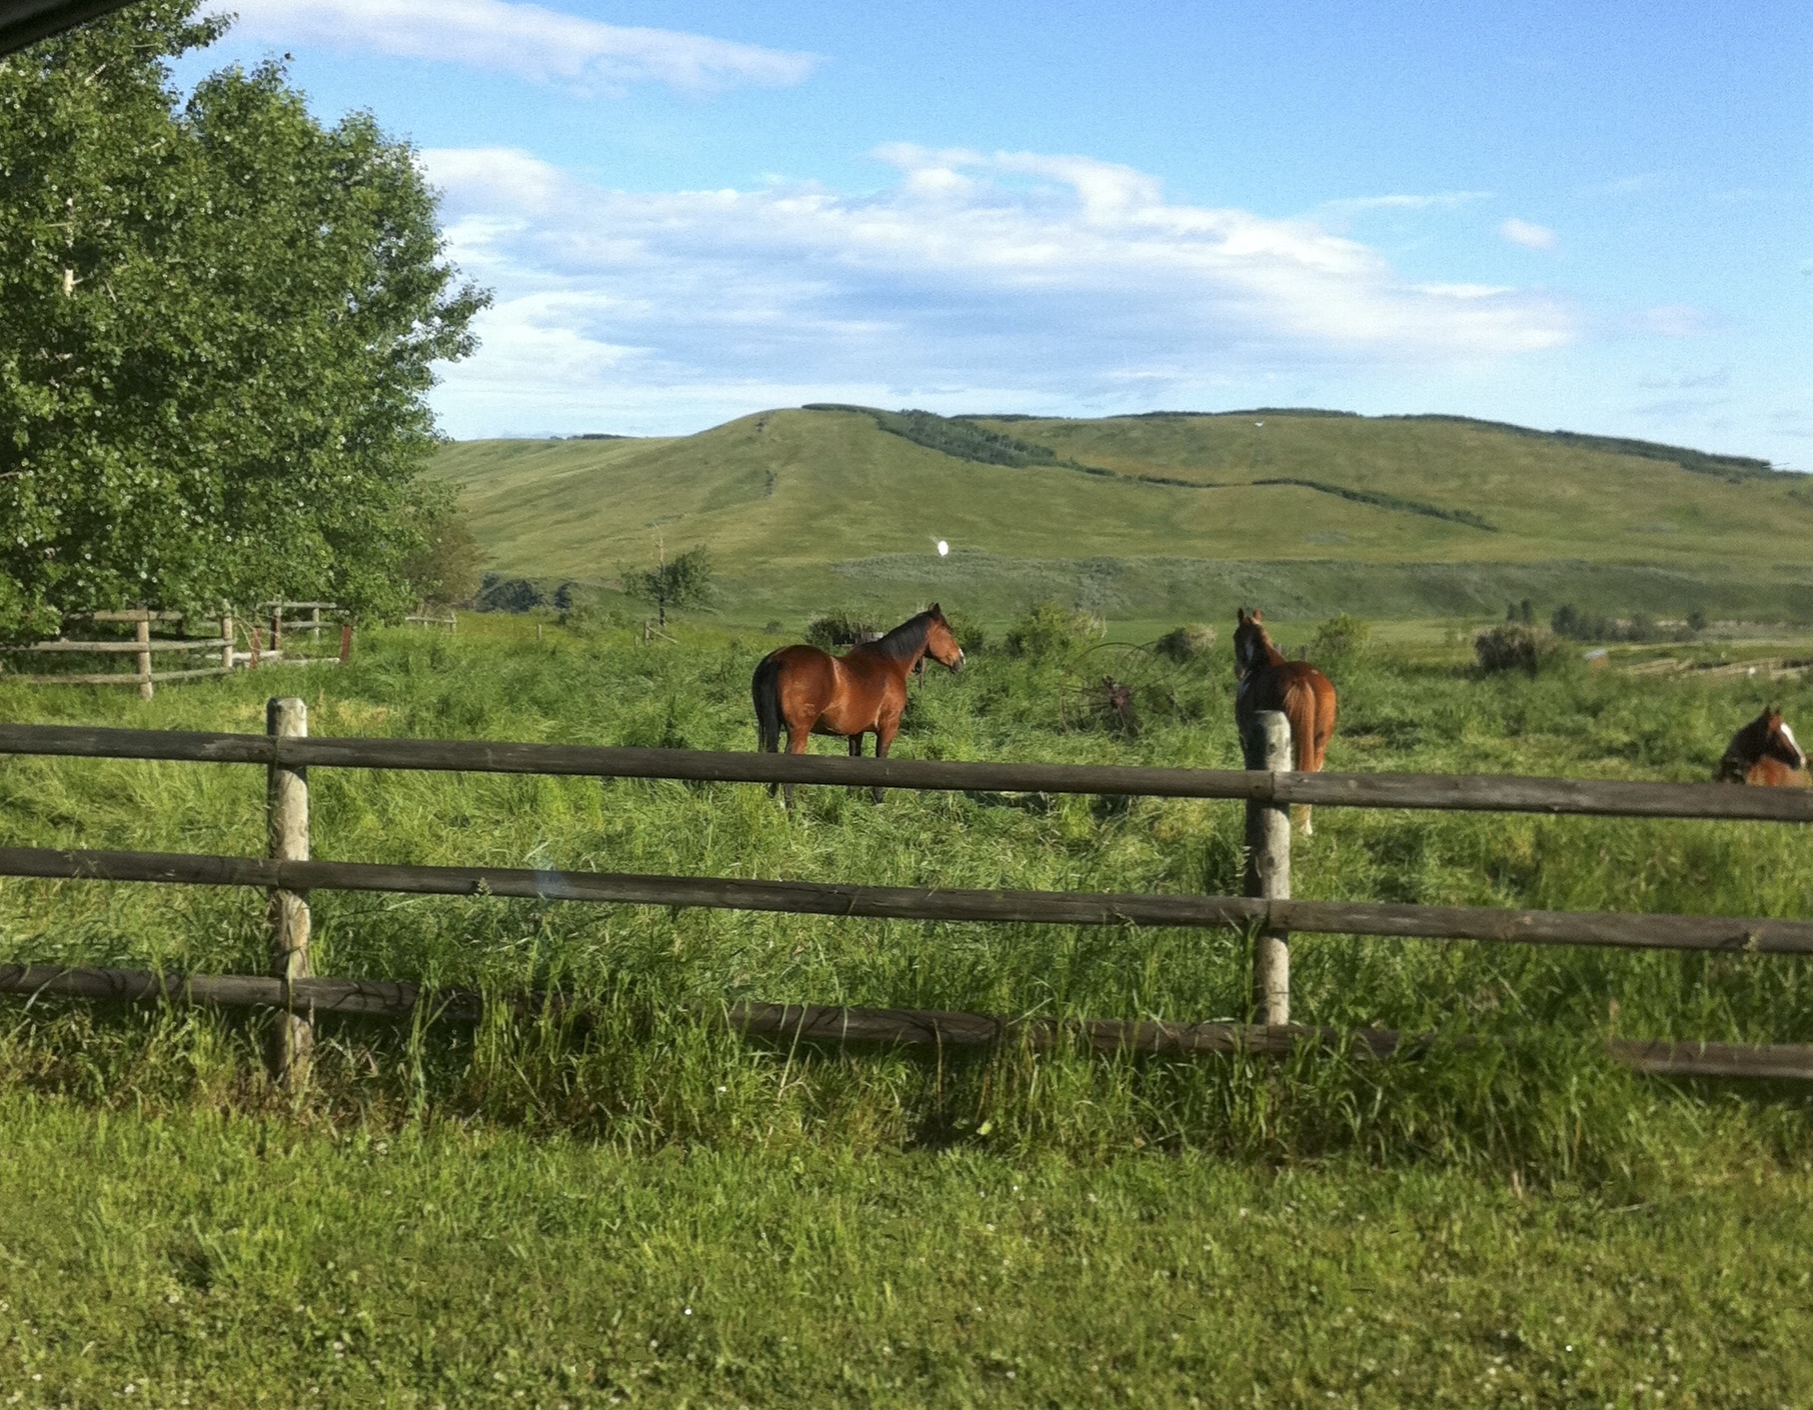 If only all farms could look like this :) A view from a home visit a few years back.